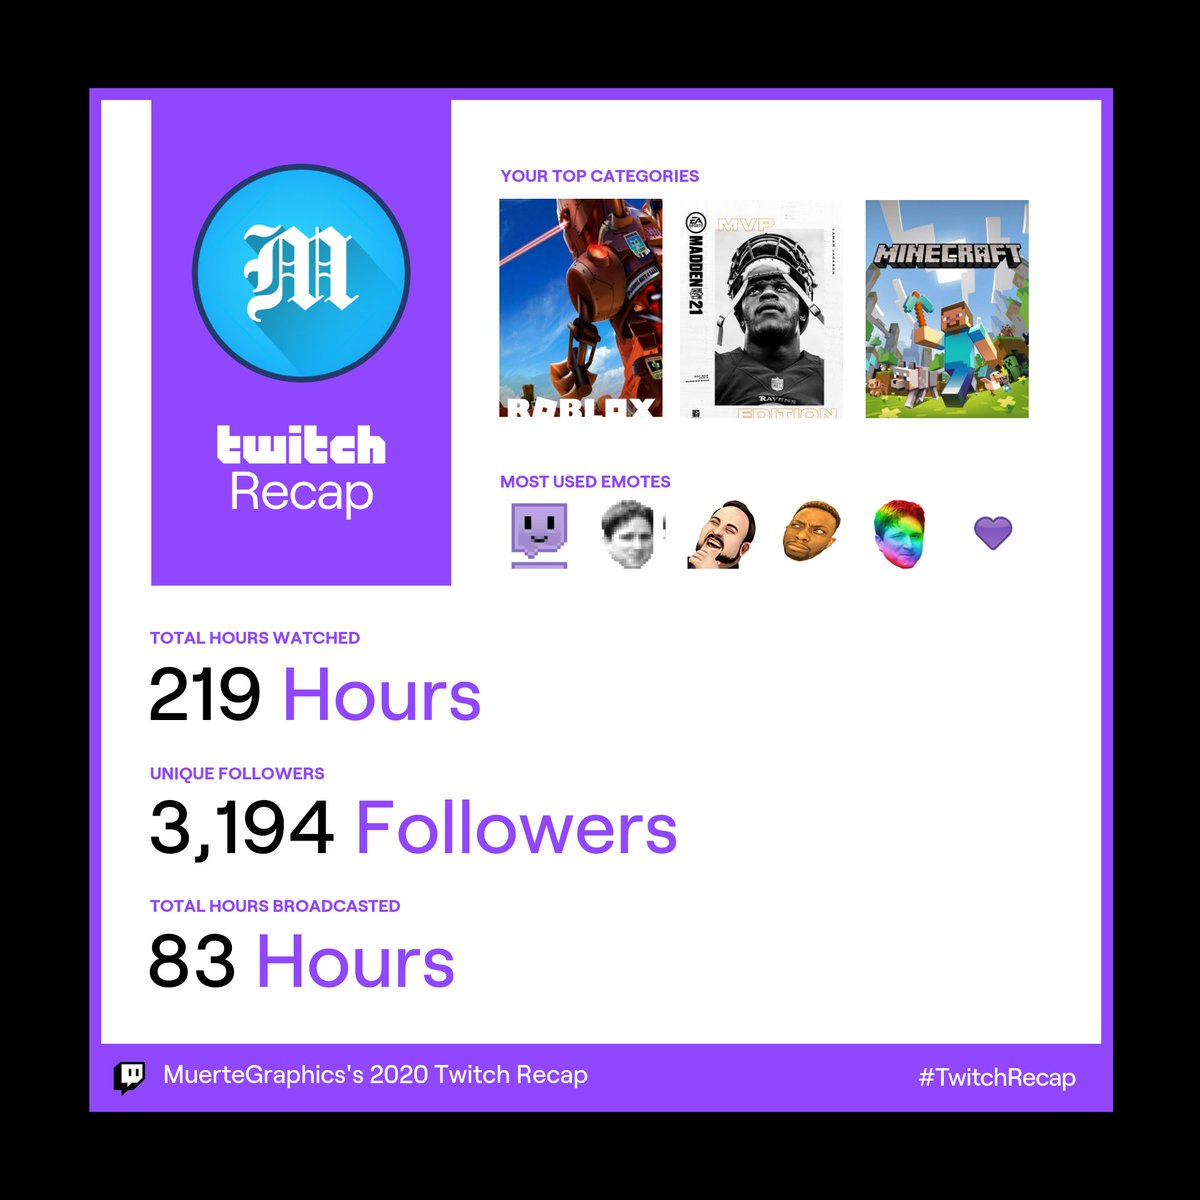 It was a good year for me on twitch #TwitchRecap even though I only streamed a few days